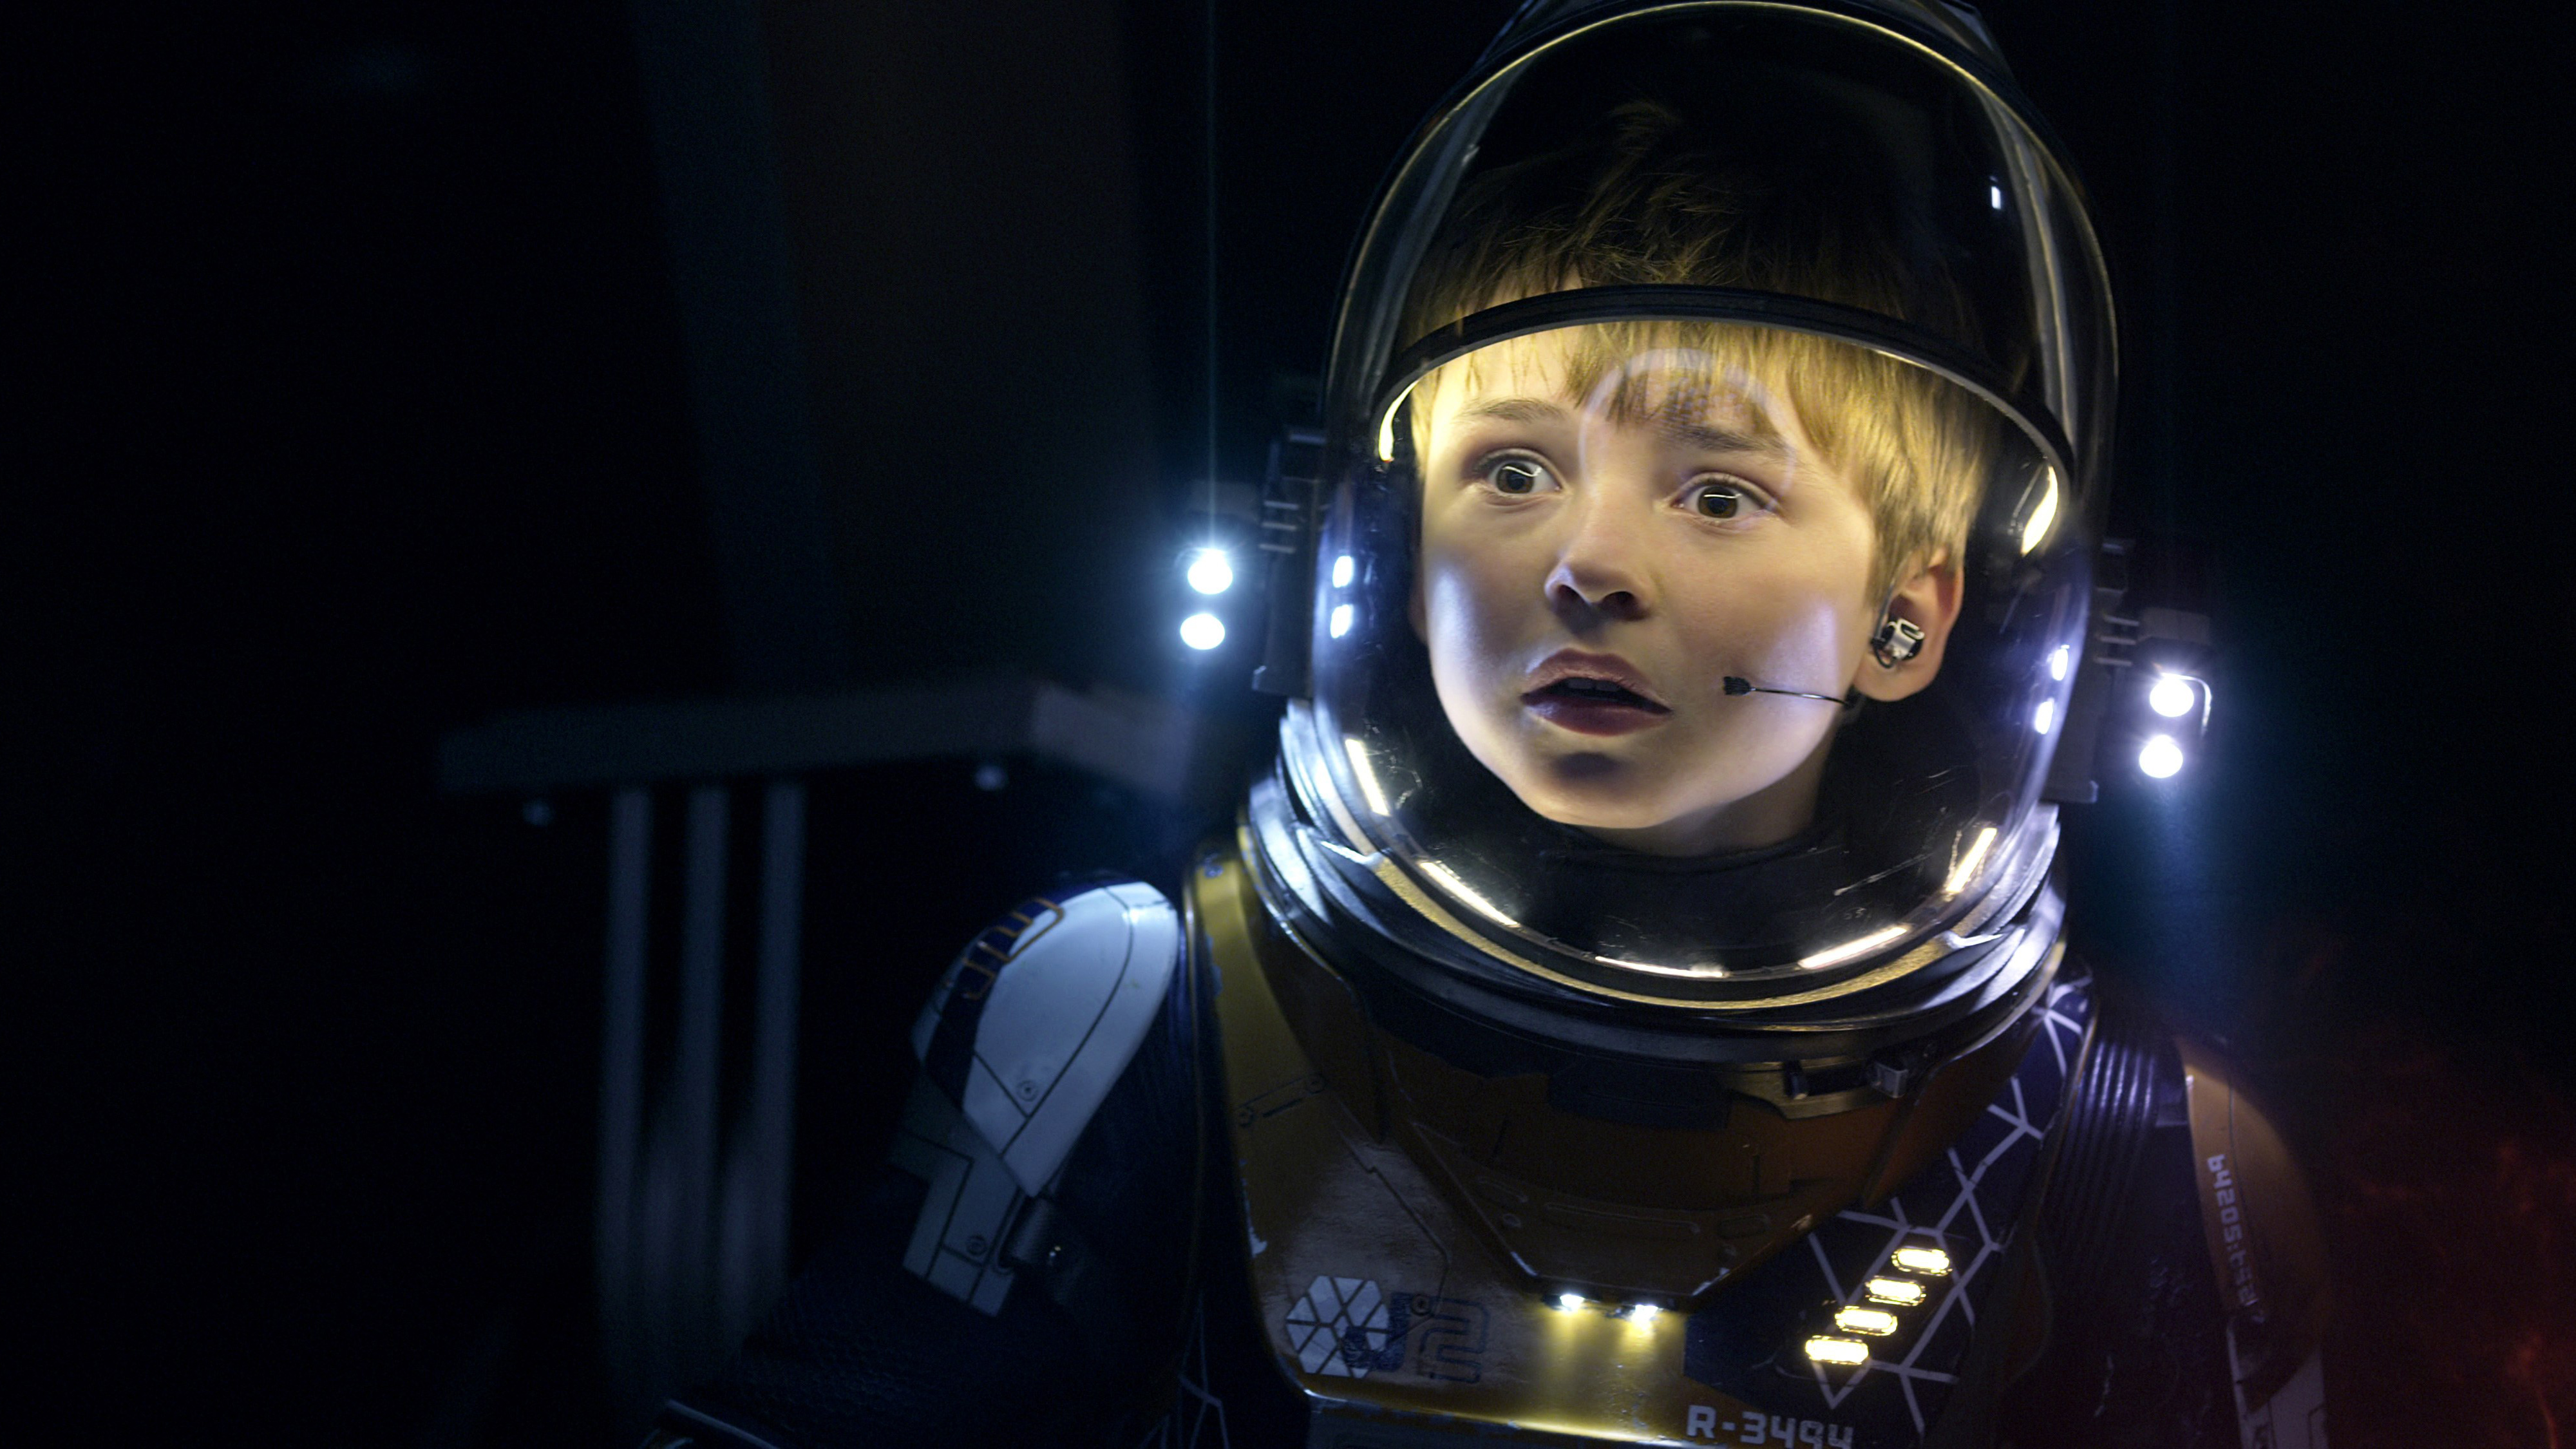 Maxwell Jenkins As Will In Lost In Space 4k Wallpapers Will Robinson Lost In Space Netflix 4000x2250 Download Hd Wallpaper Wallpapertip